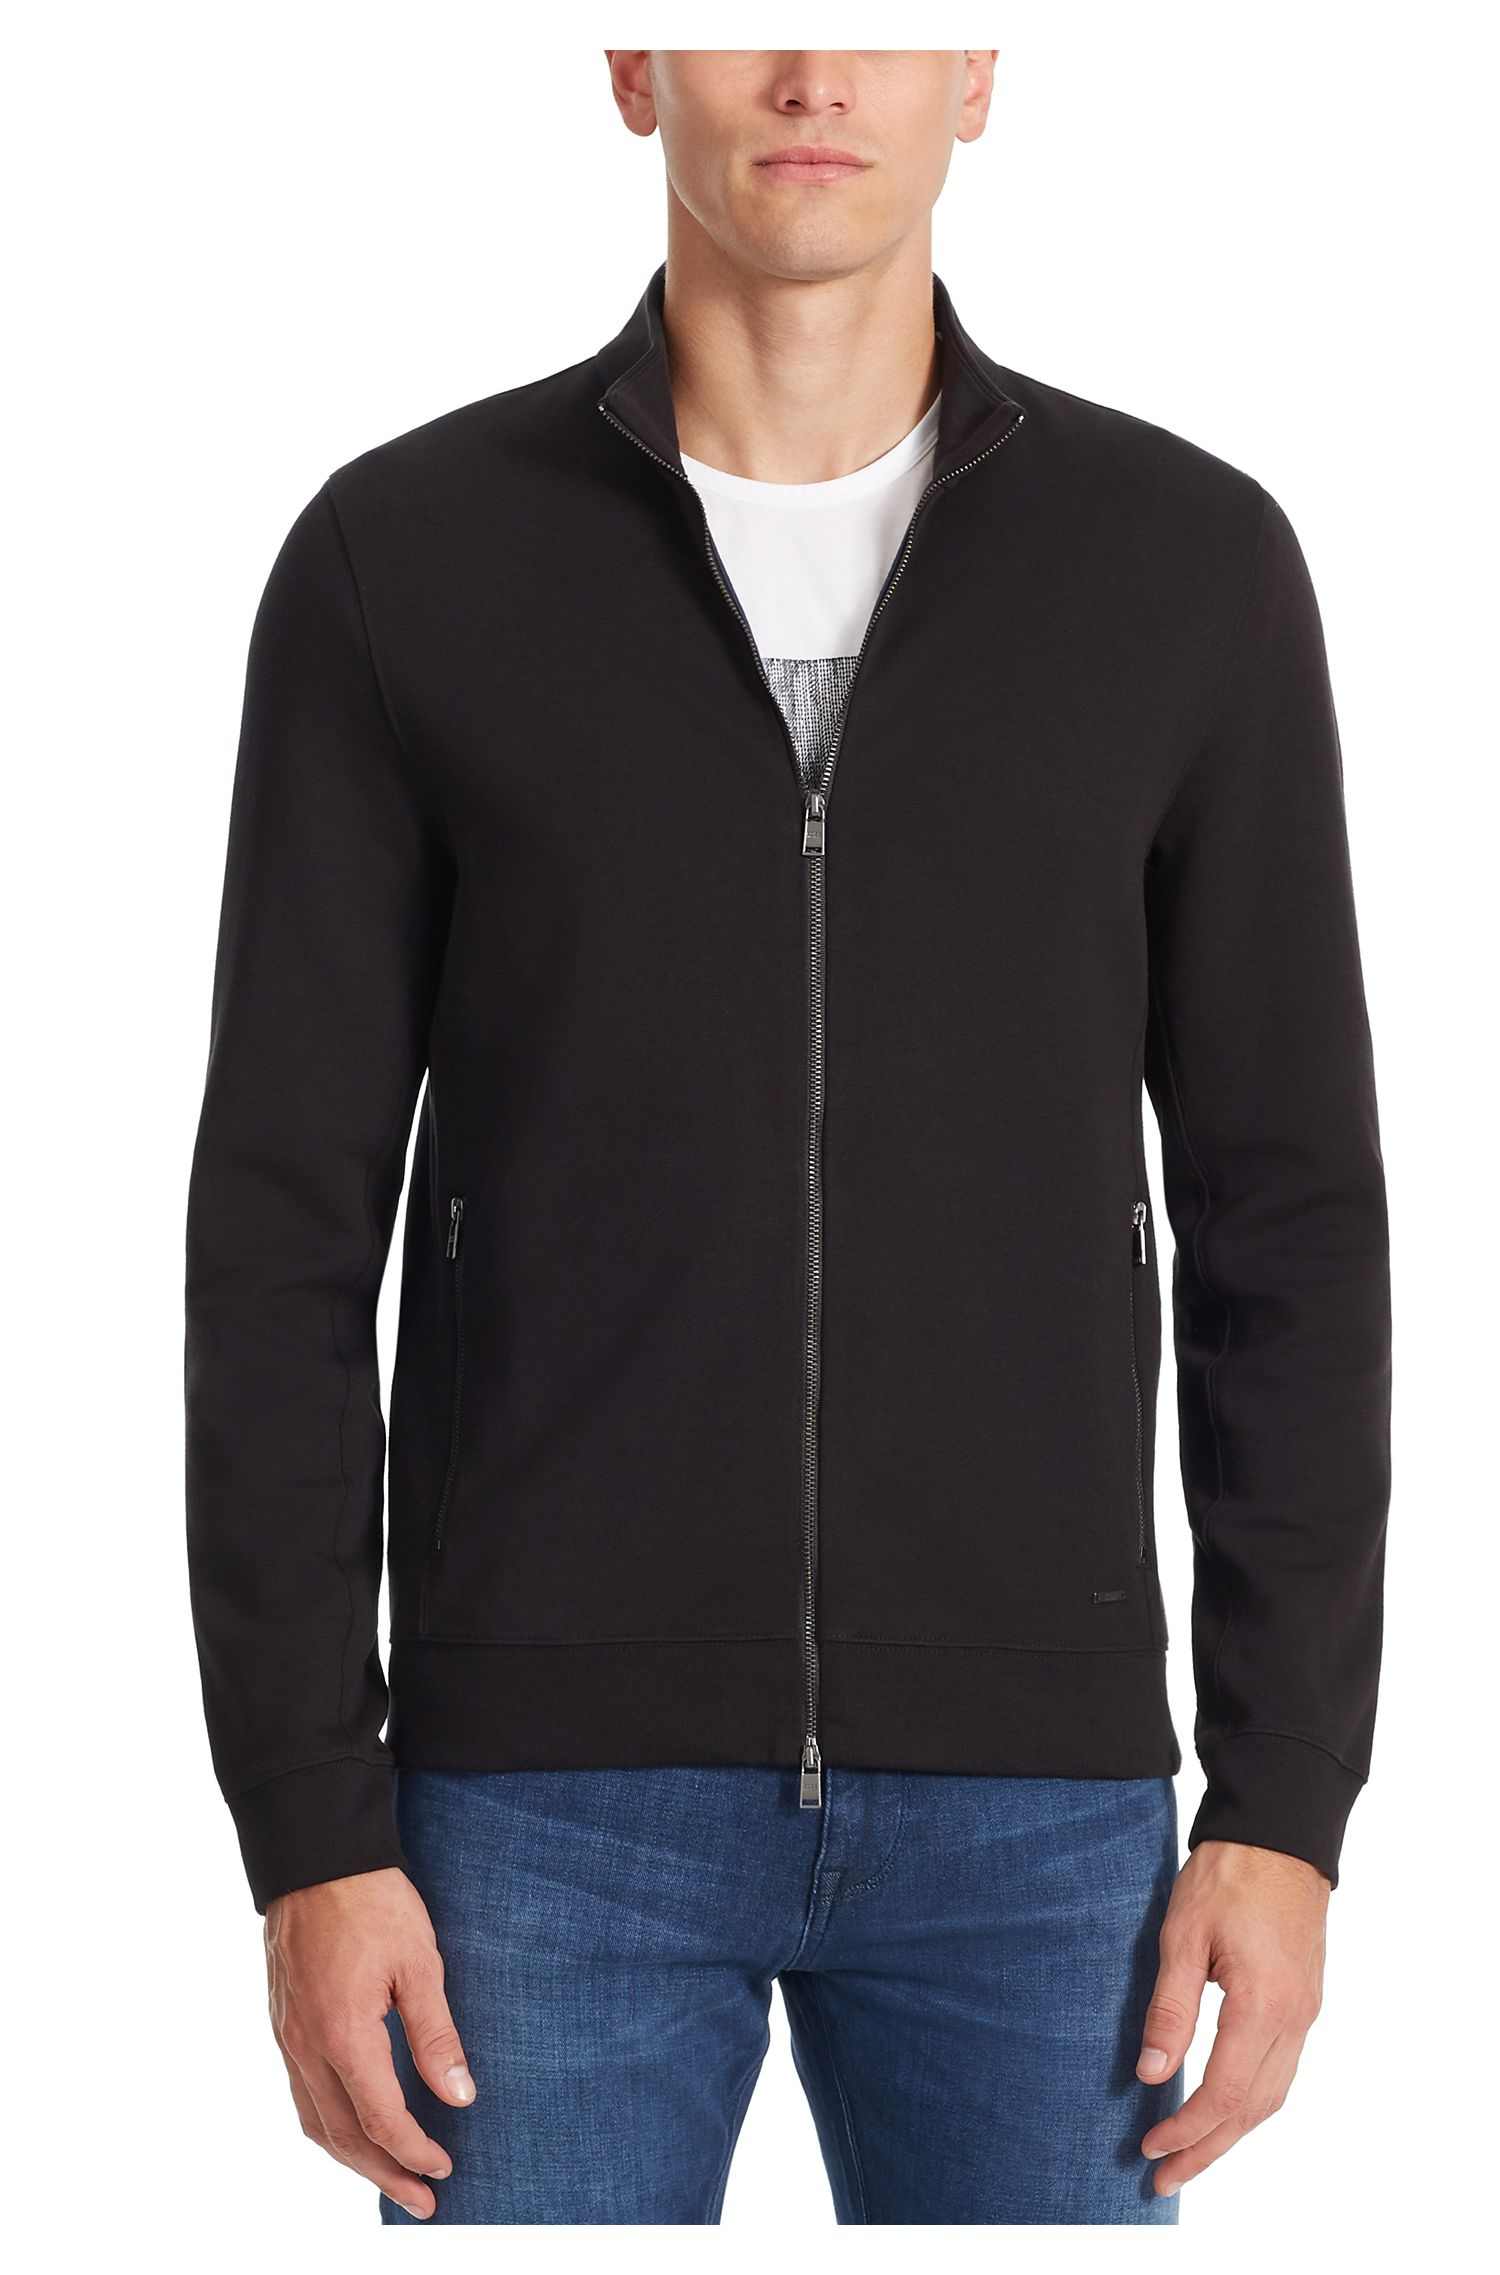 Stretch Cotton Sweater Jacket | Soule